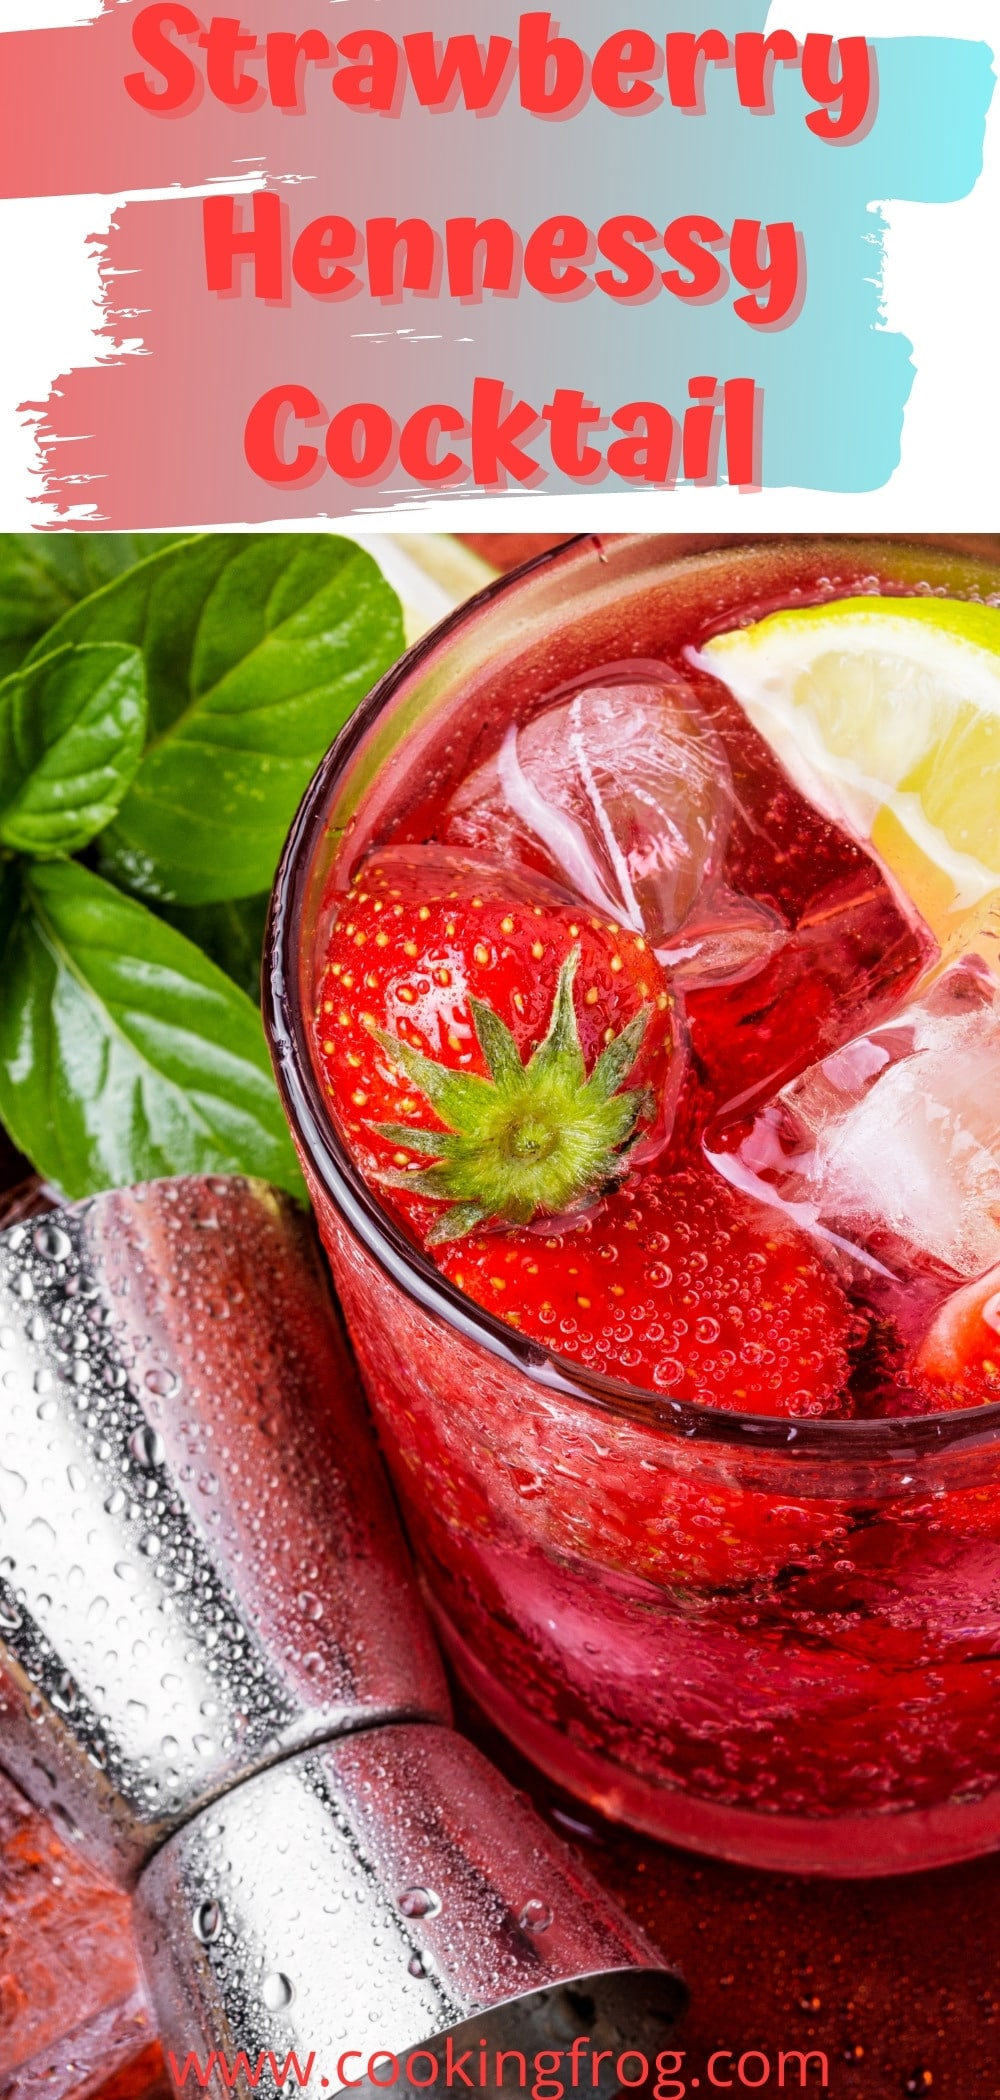 Strawberry Hennessy cocktail